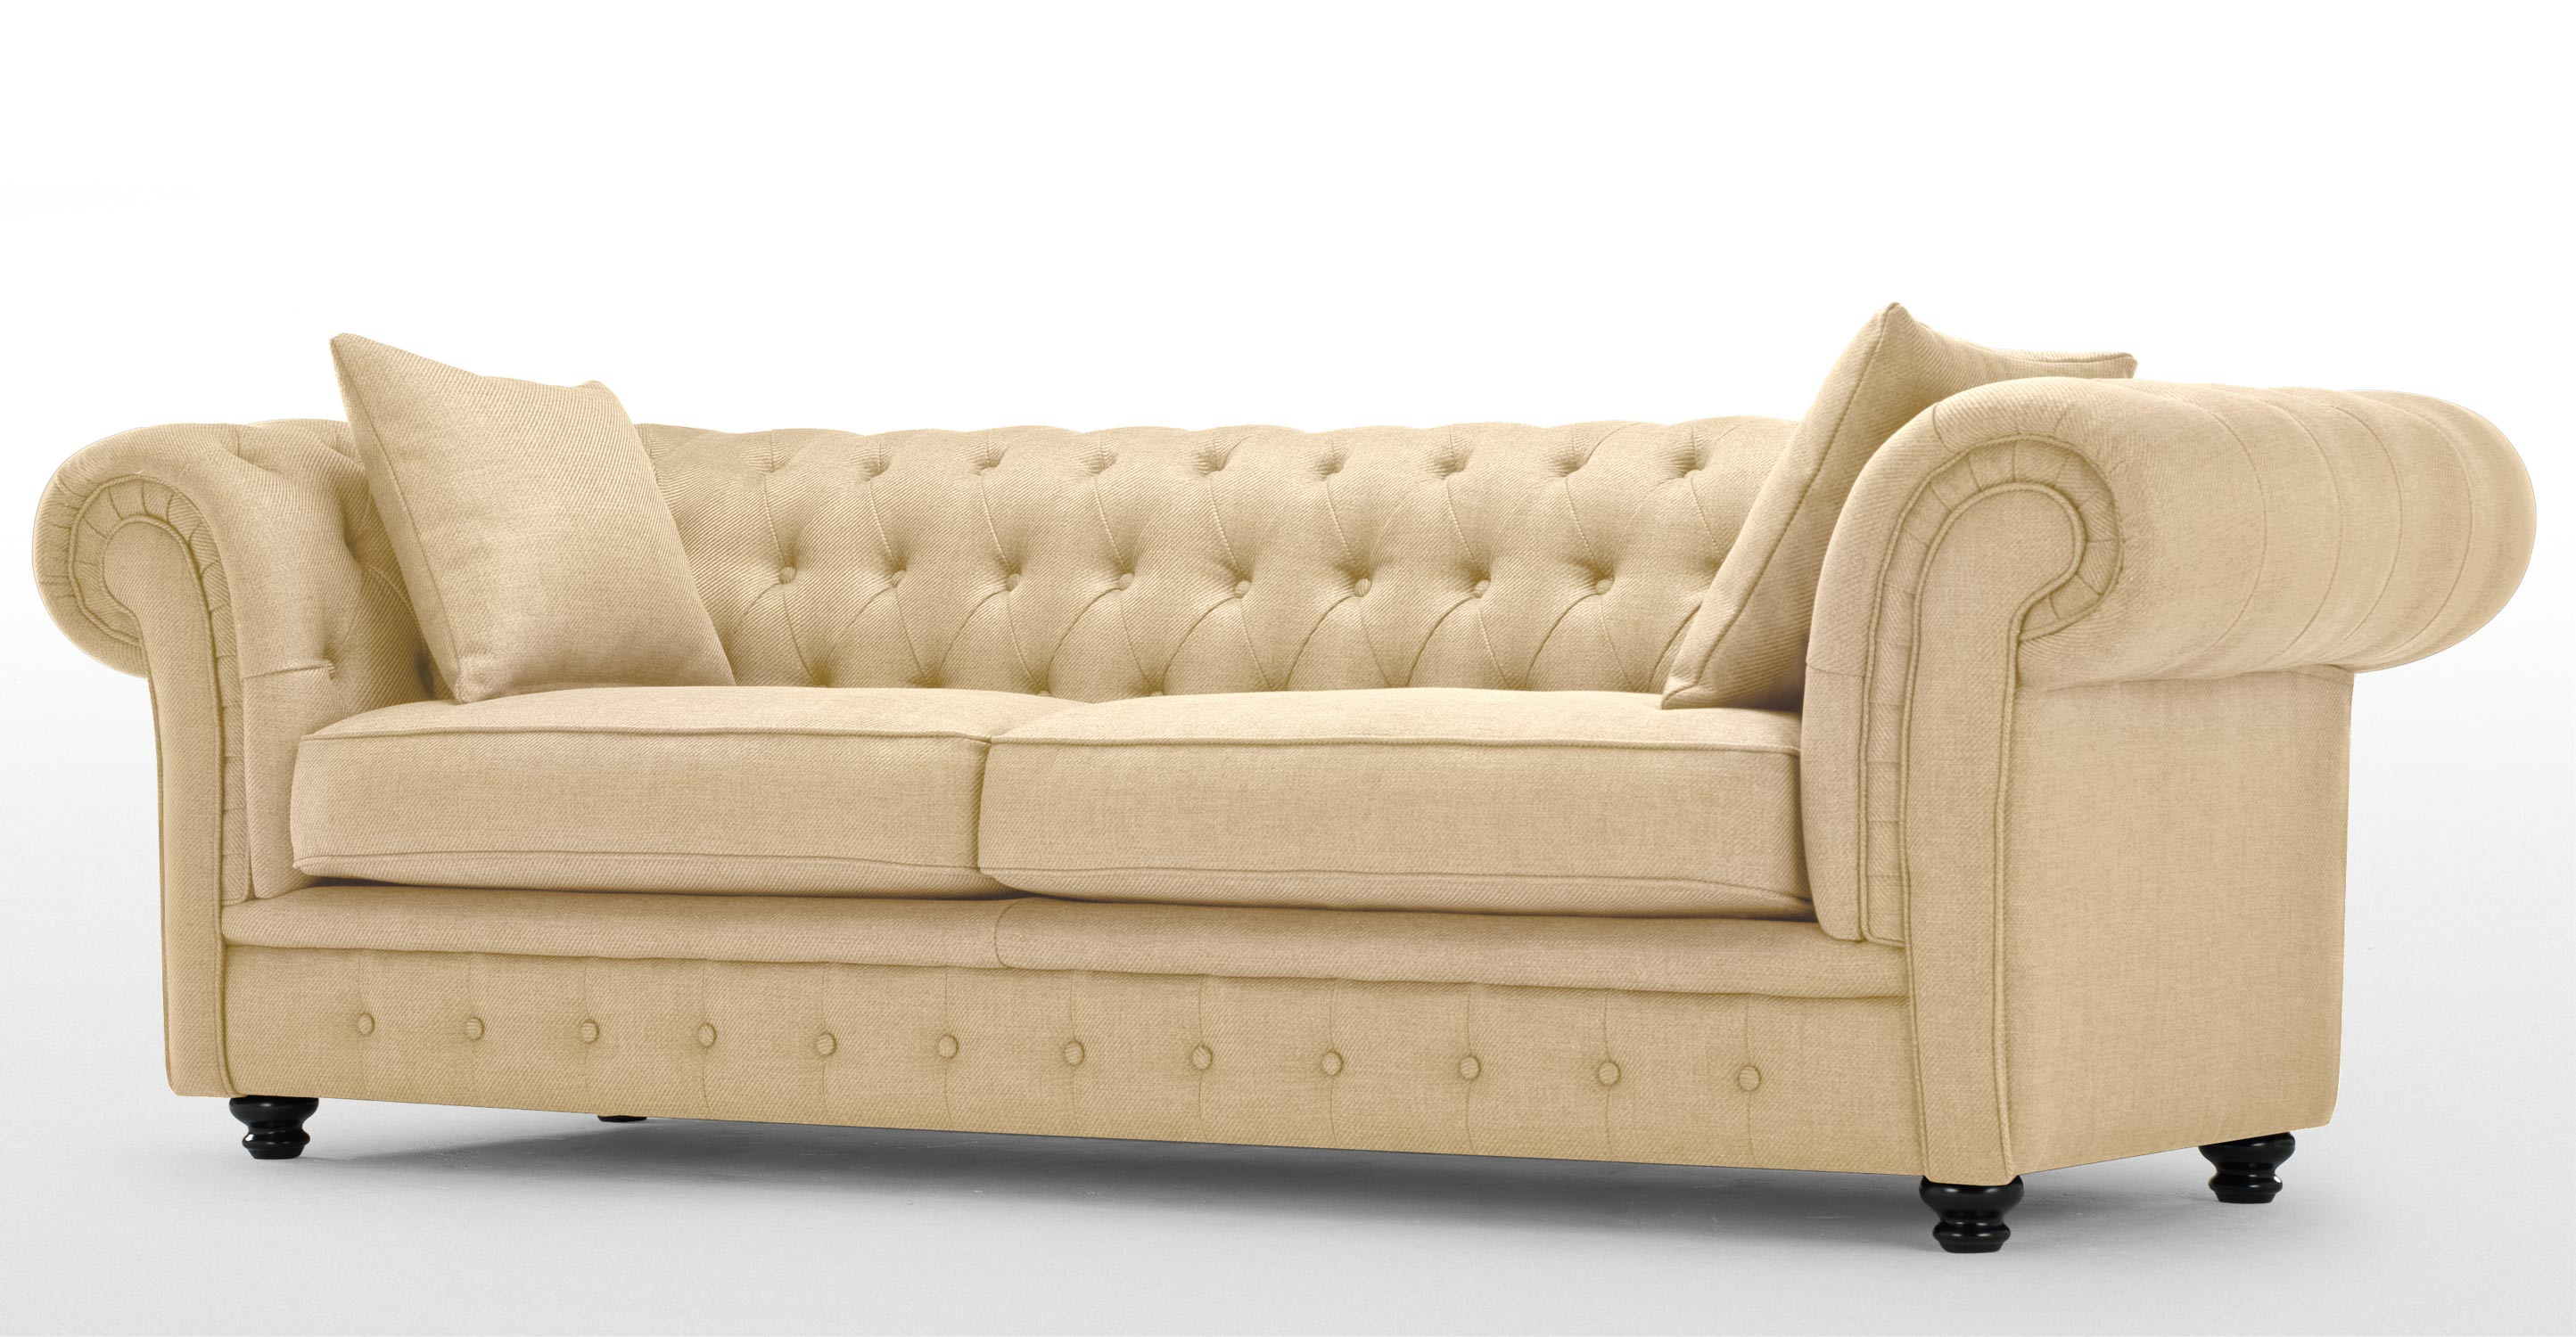 Branagh 3 seater chesterfield sofa in barley beige - Canape chesterfield beige ...